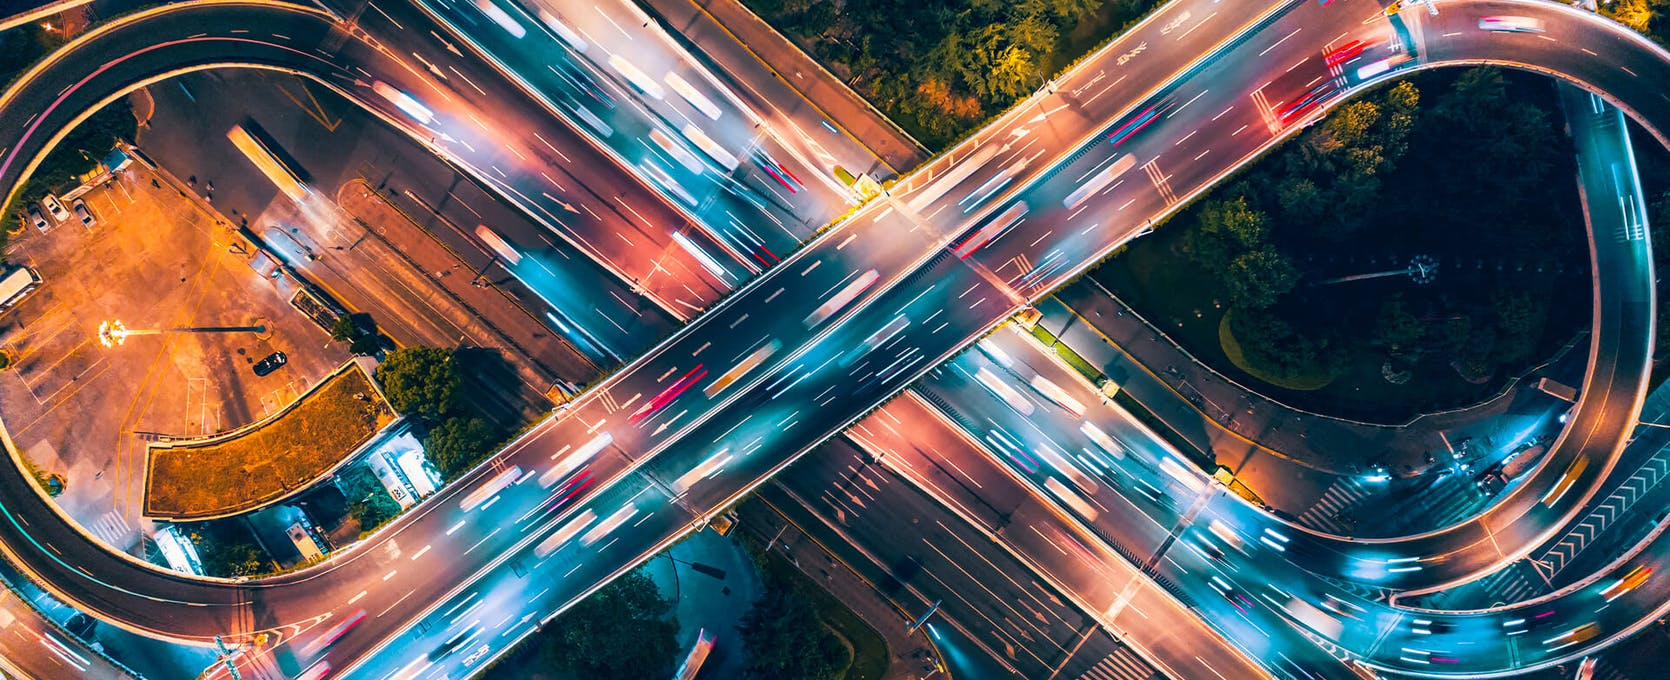 Aerial view of cars driving over highway at night